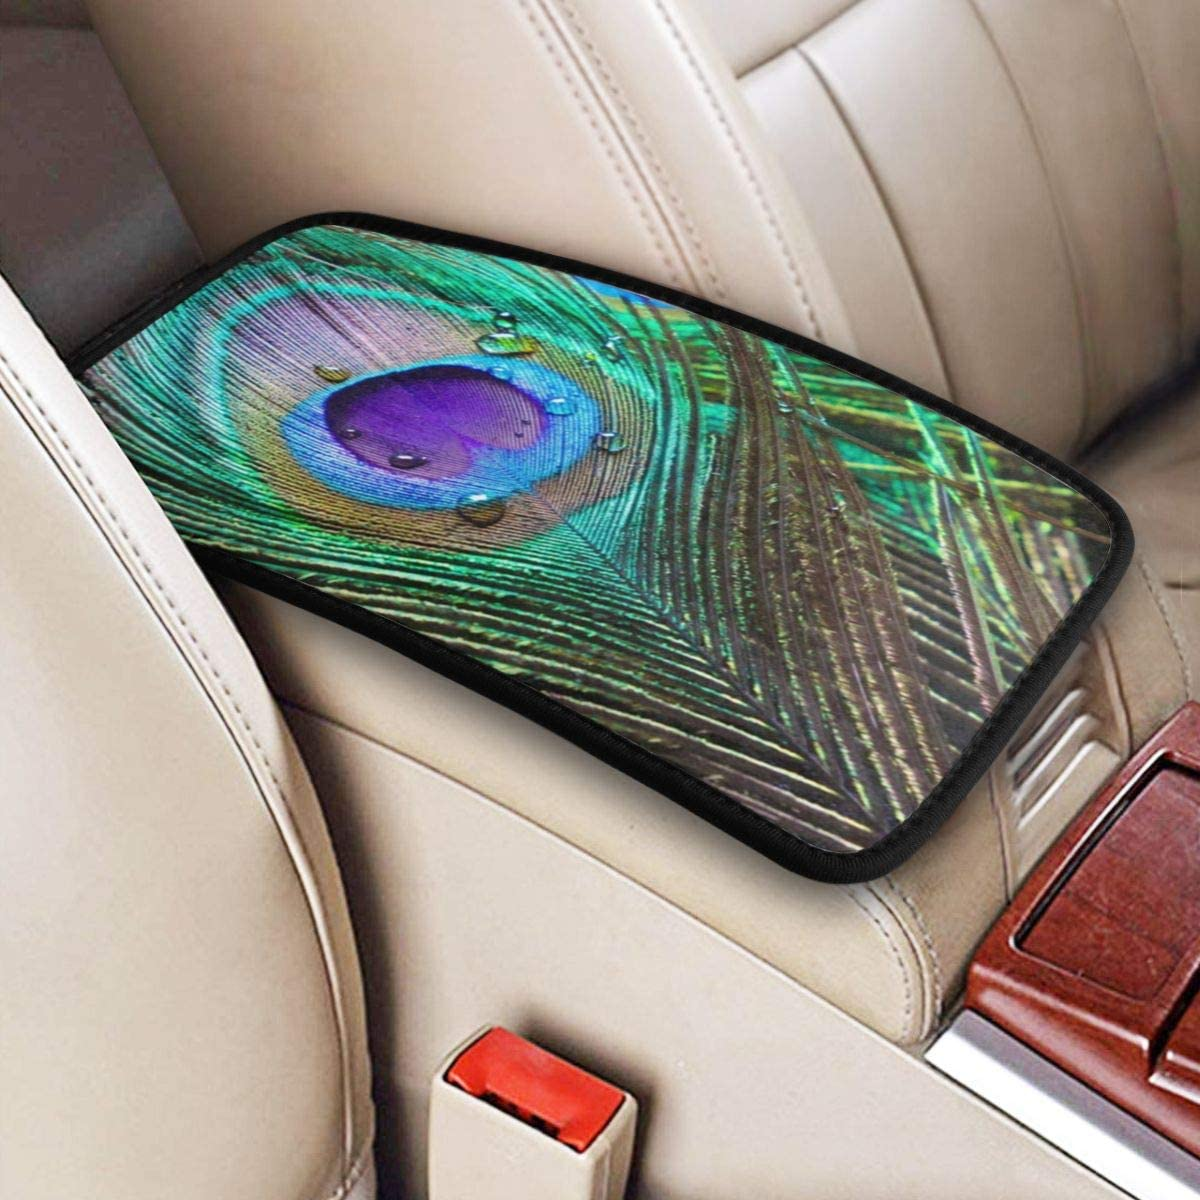 Ouqiuwa Peacock Feather Abstract Auto Center Console Armrest Pad Seat Box Cover Universal Fit Car Armrest Cover Cushion Mat Washable for SUV Car Accessories